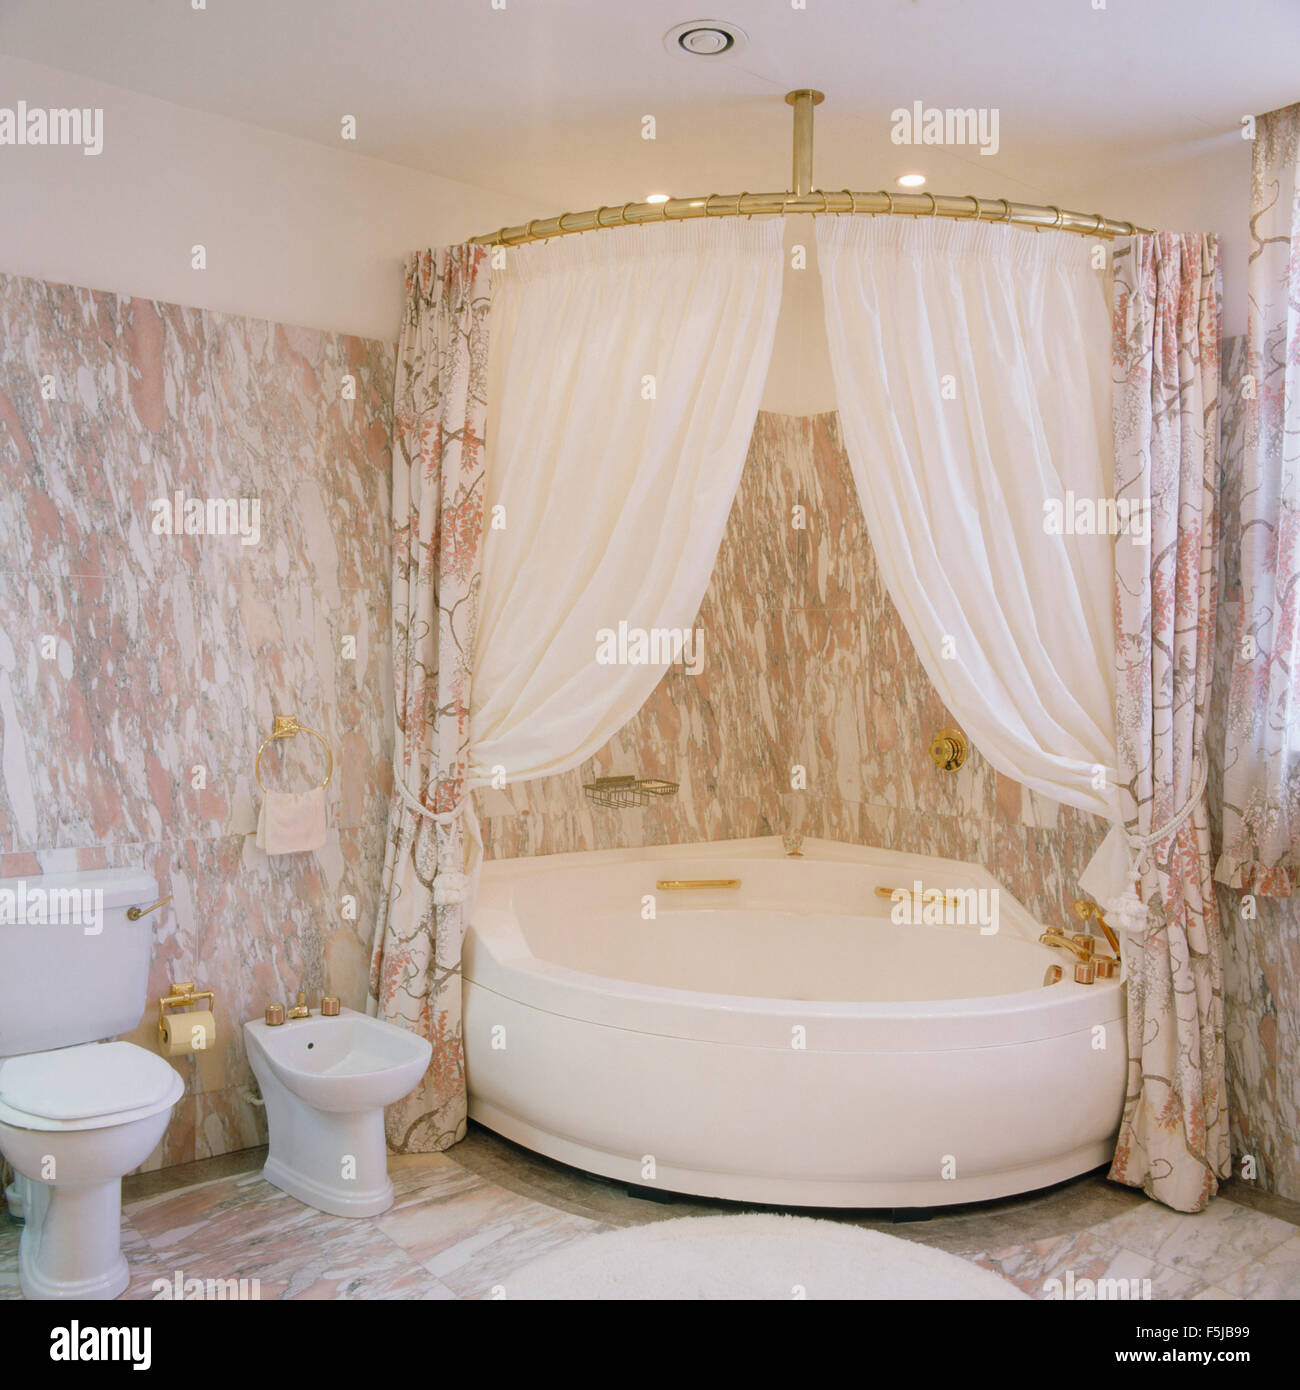 White Shower Curtains On Corner Bath In An Eighties Marble Bathroom